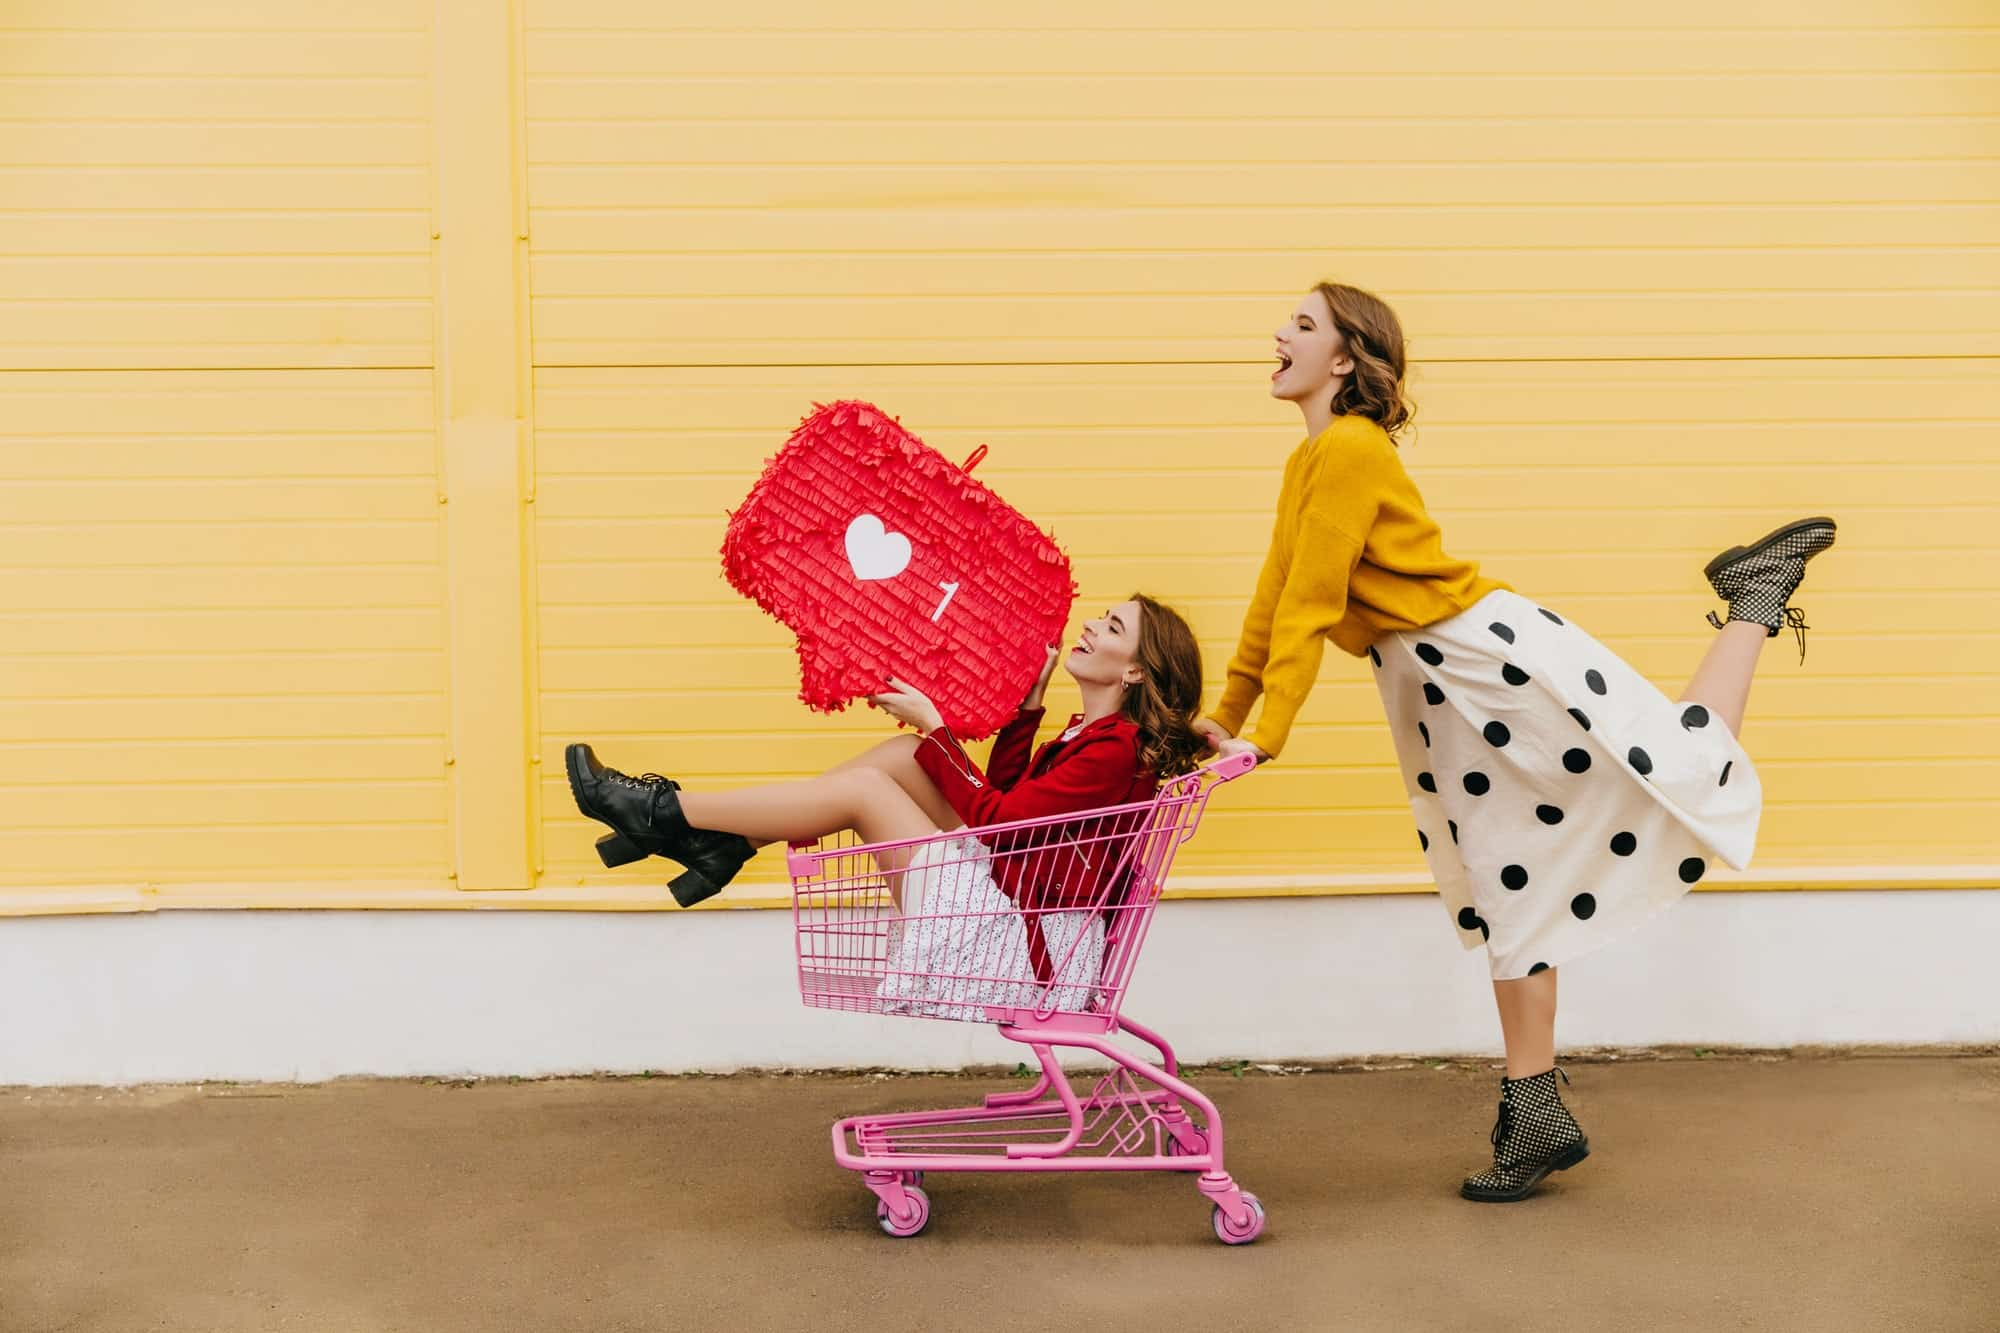 Half length shot of two girls with social media icon. Outdoor photo of female models using shopping